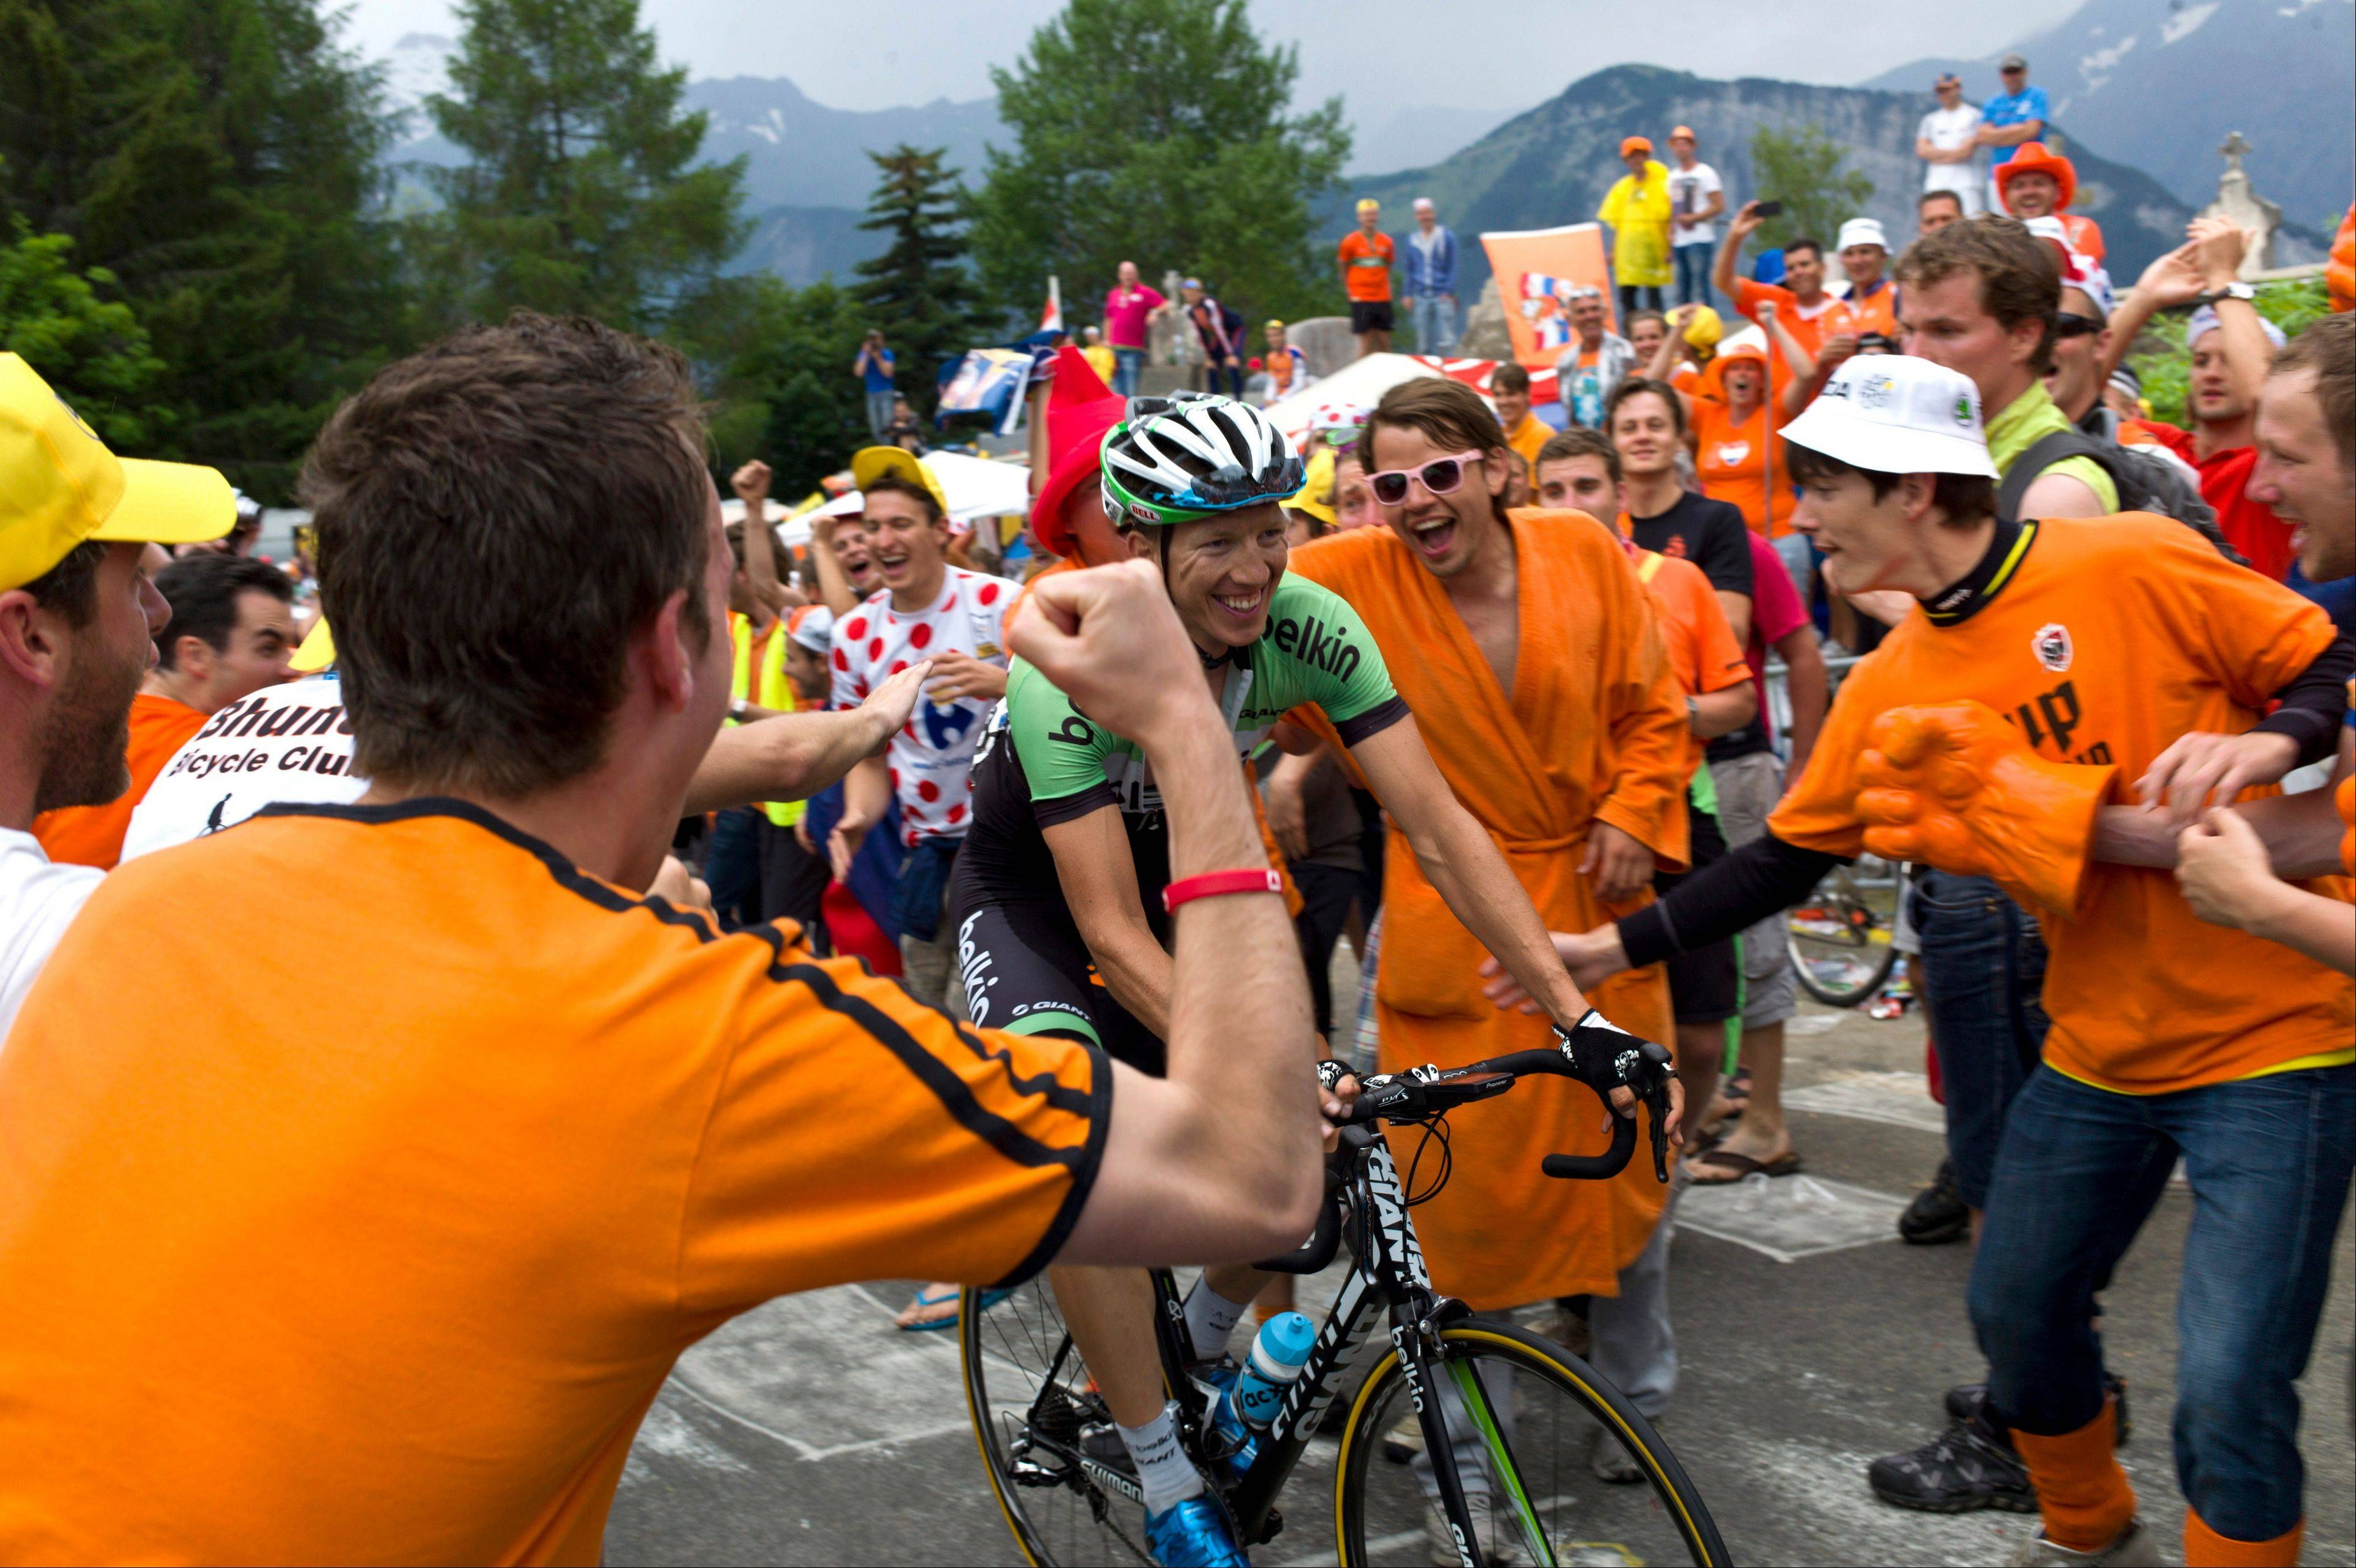 Dutch cycling fans cheers as Sep Vanmarcke of Belgium passes curve number 7, also known as the Dutch curve during the eighteenth stage of the Tour de France cycling race over 172.5 kilometers (107.8 miles) with start in Gap and finish in Alpe-d'Huez, France, Thursday July 18, 2013. (AP Photo/Thibault Camus)